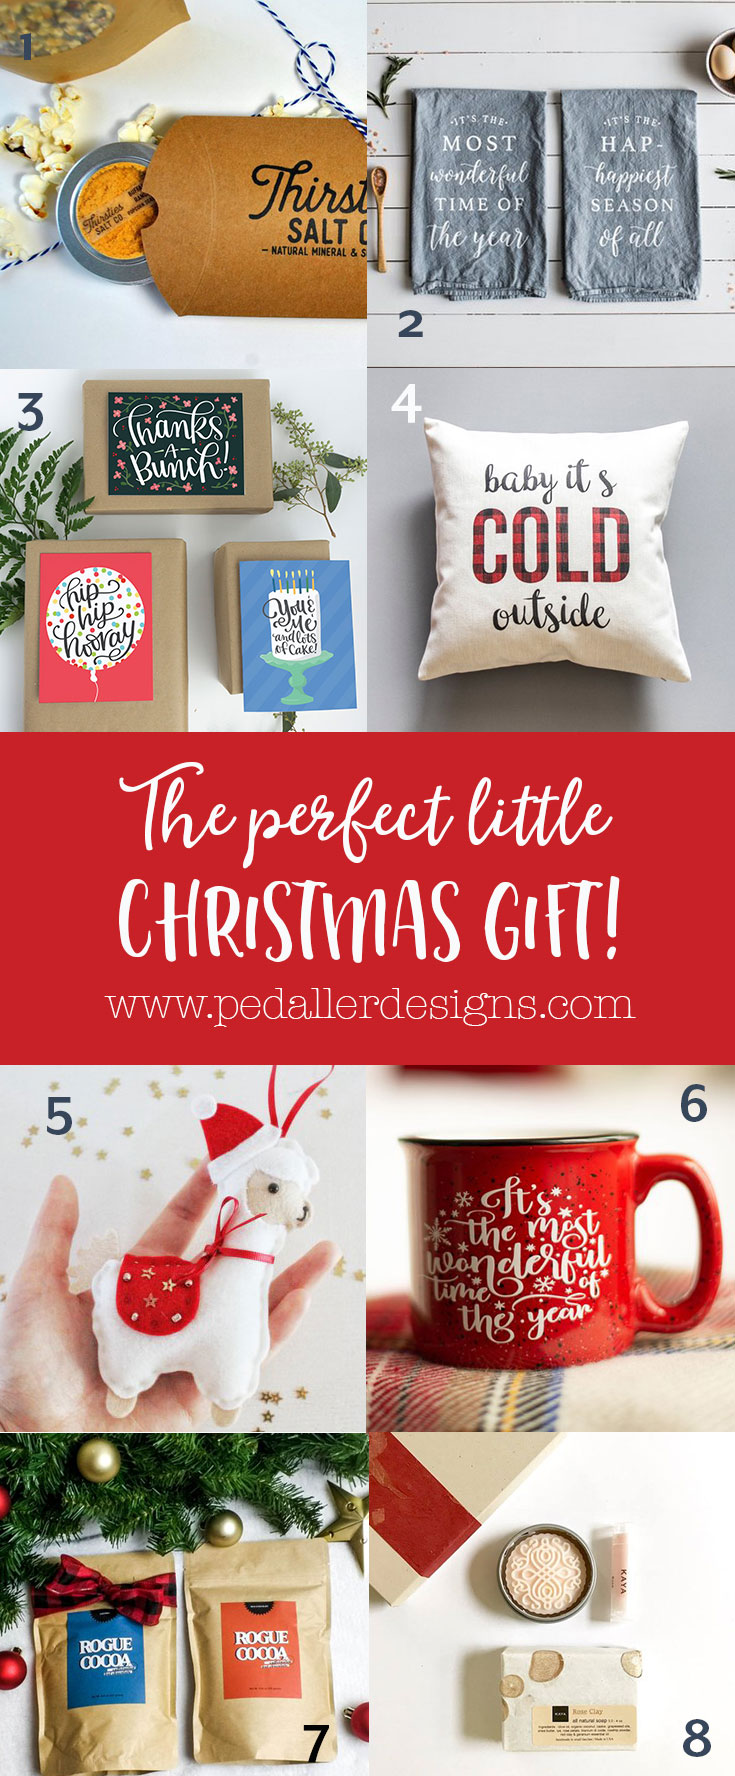 Find the perfect christmas gift for all those people (the postman, the teacher, your neighbour, a colleague) in this practical christmas gift guide for anyone.